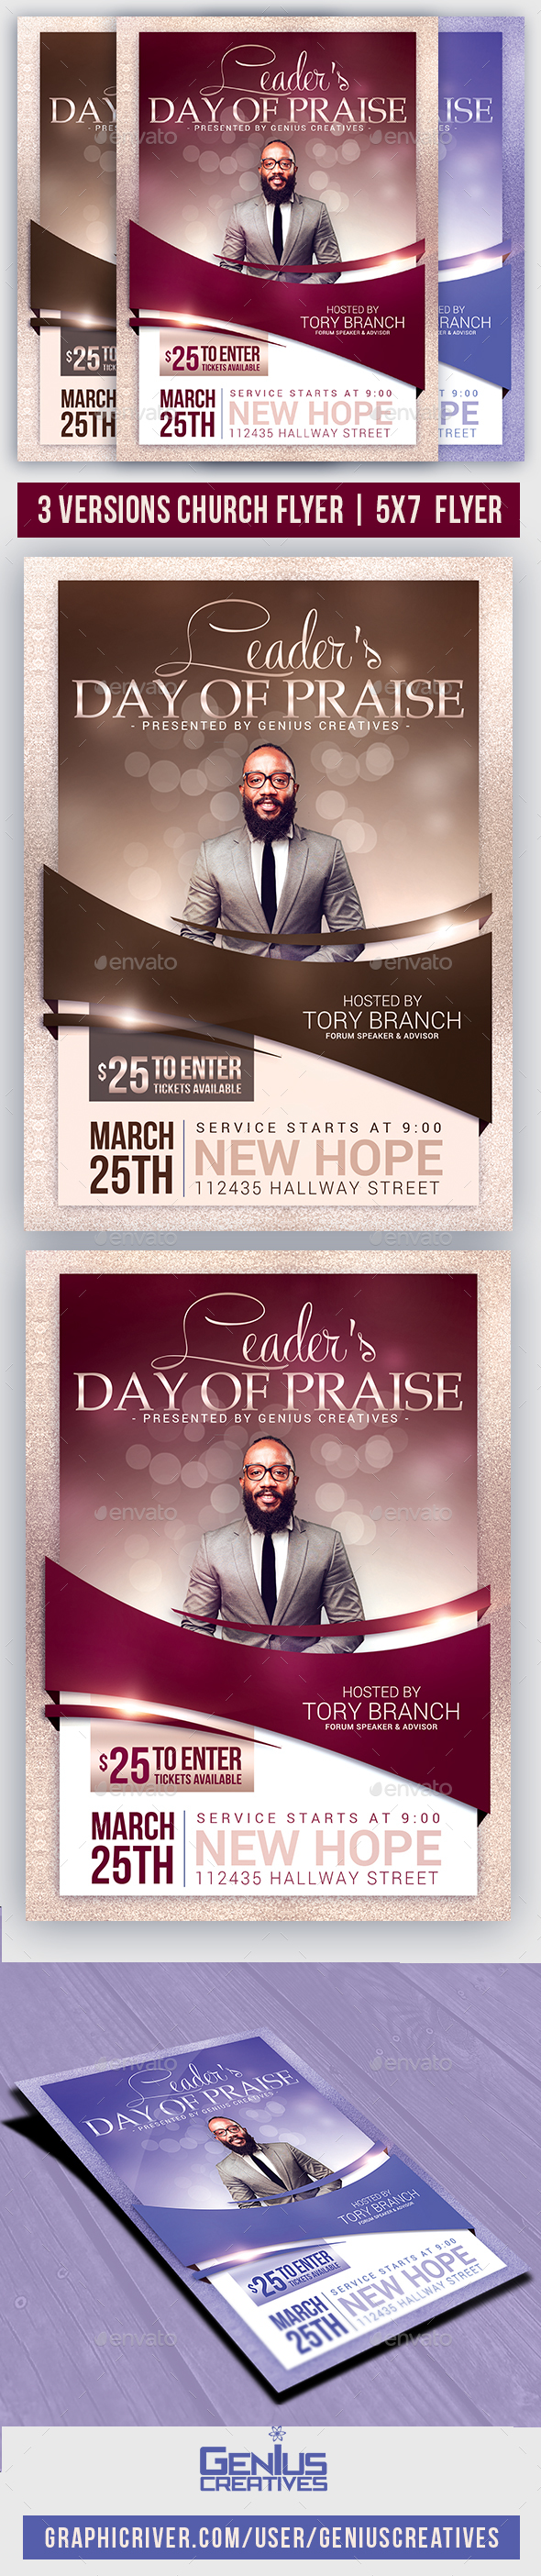 Church Event or Conference Flyer - Church Flyers